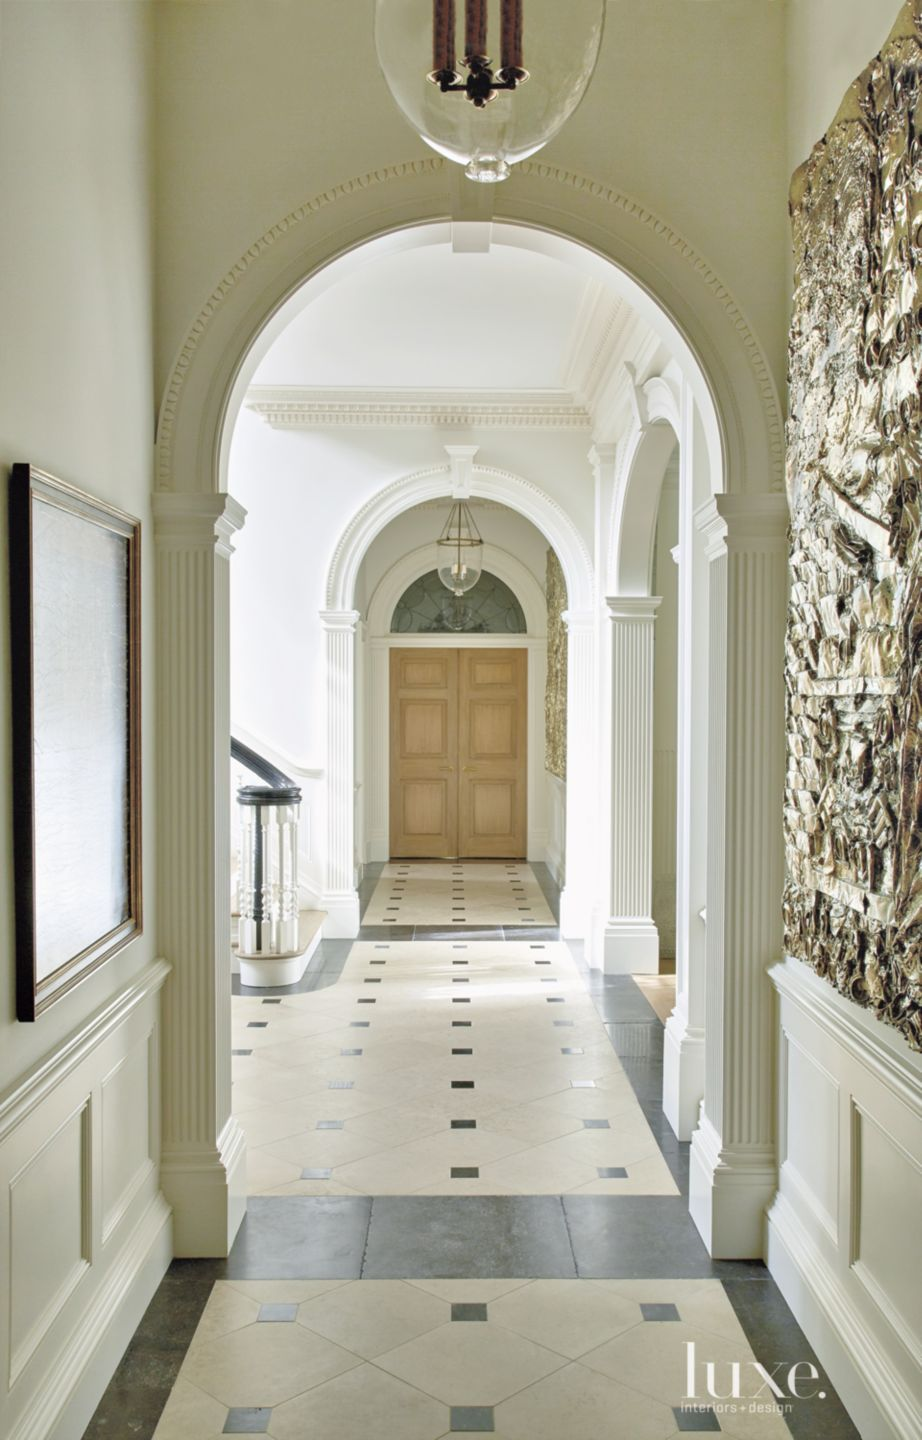 Traditional White Hallway with Arched Doorways